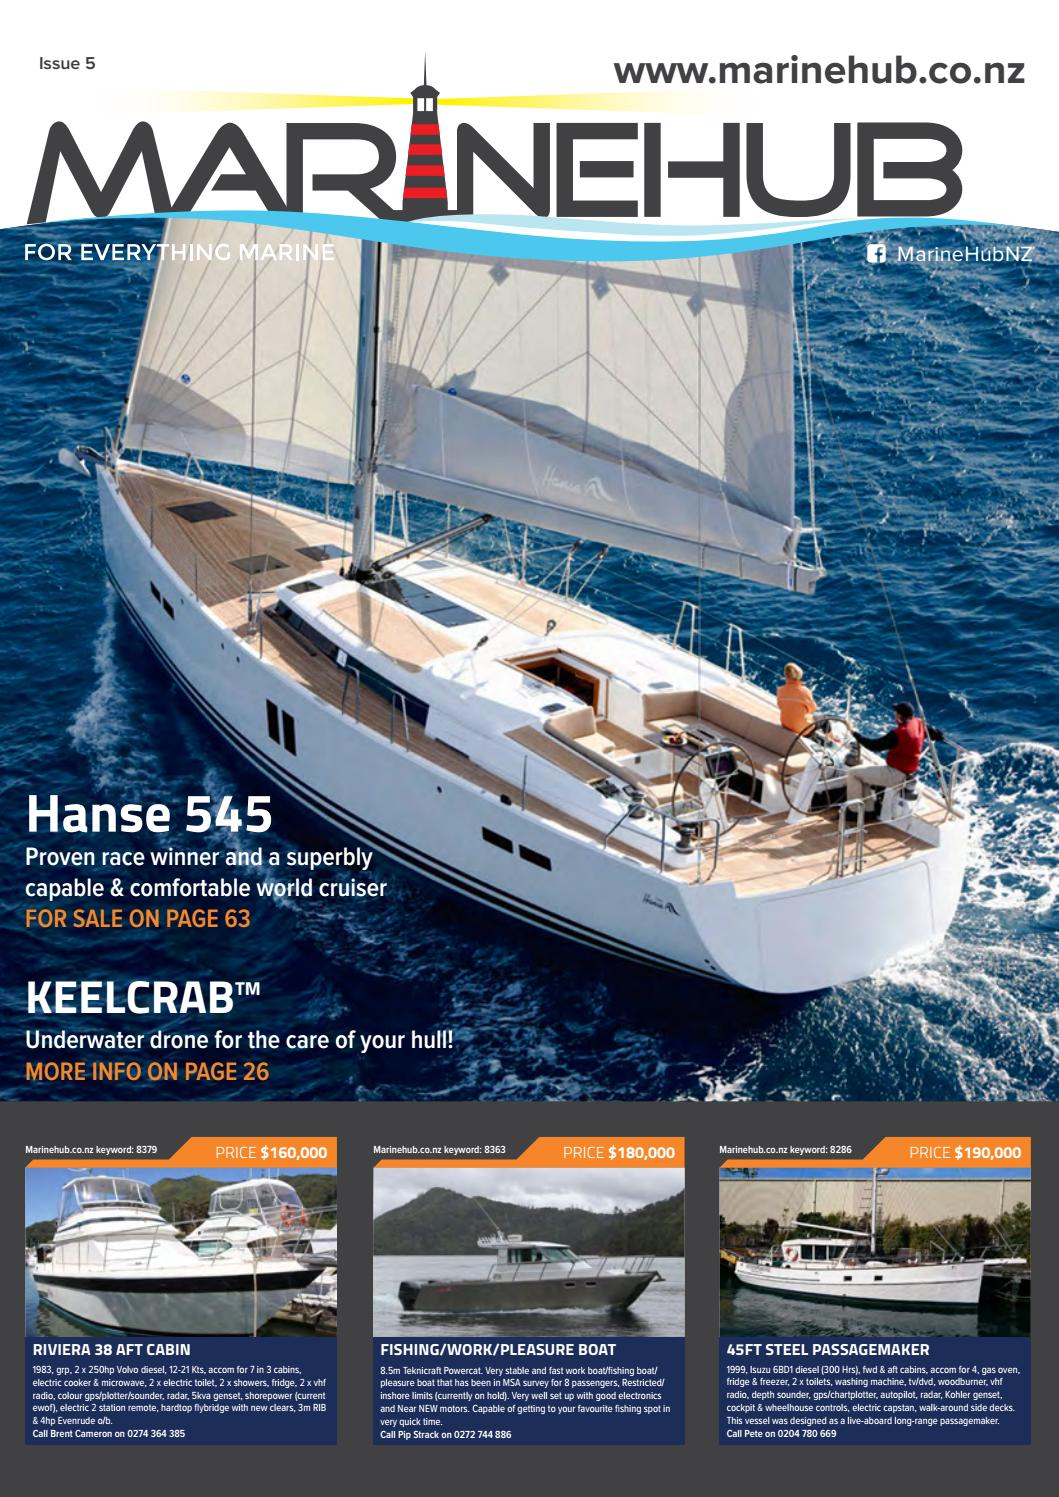 Marine Hub Magazine Issue 5 By The Marine Hub Issuu